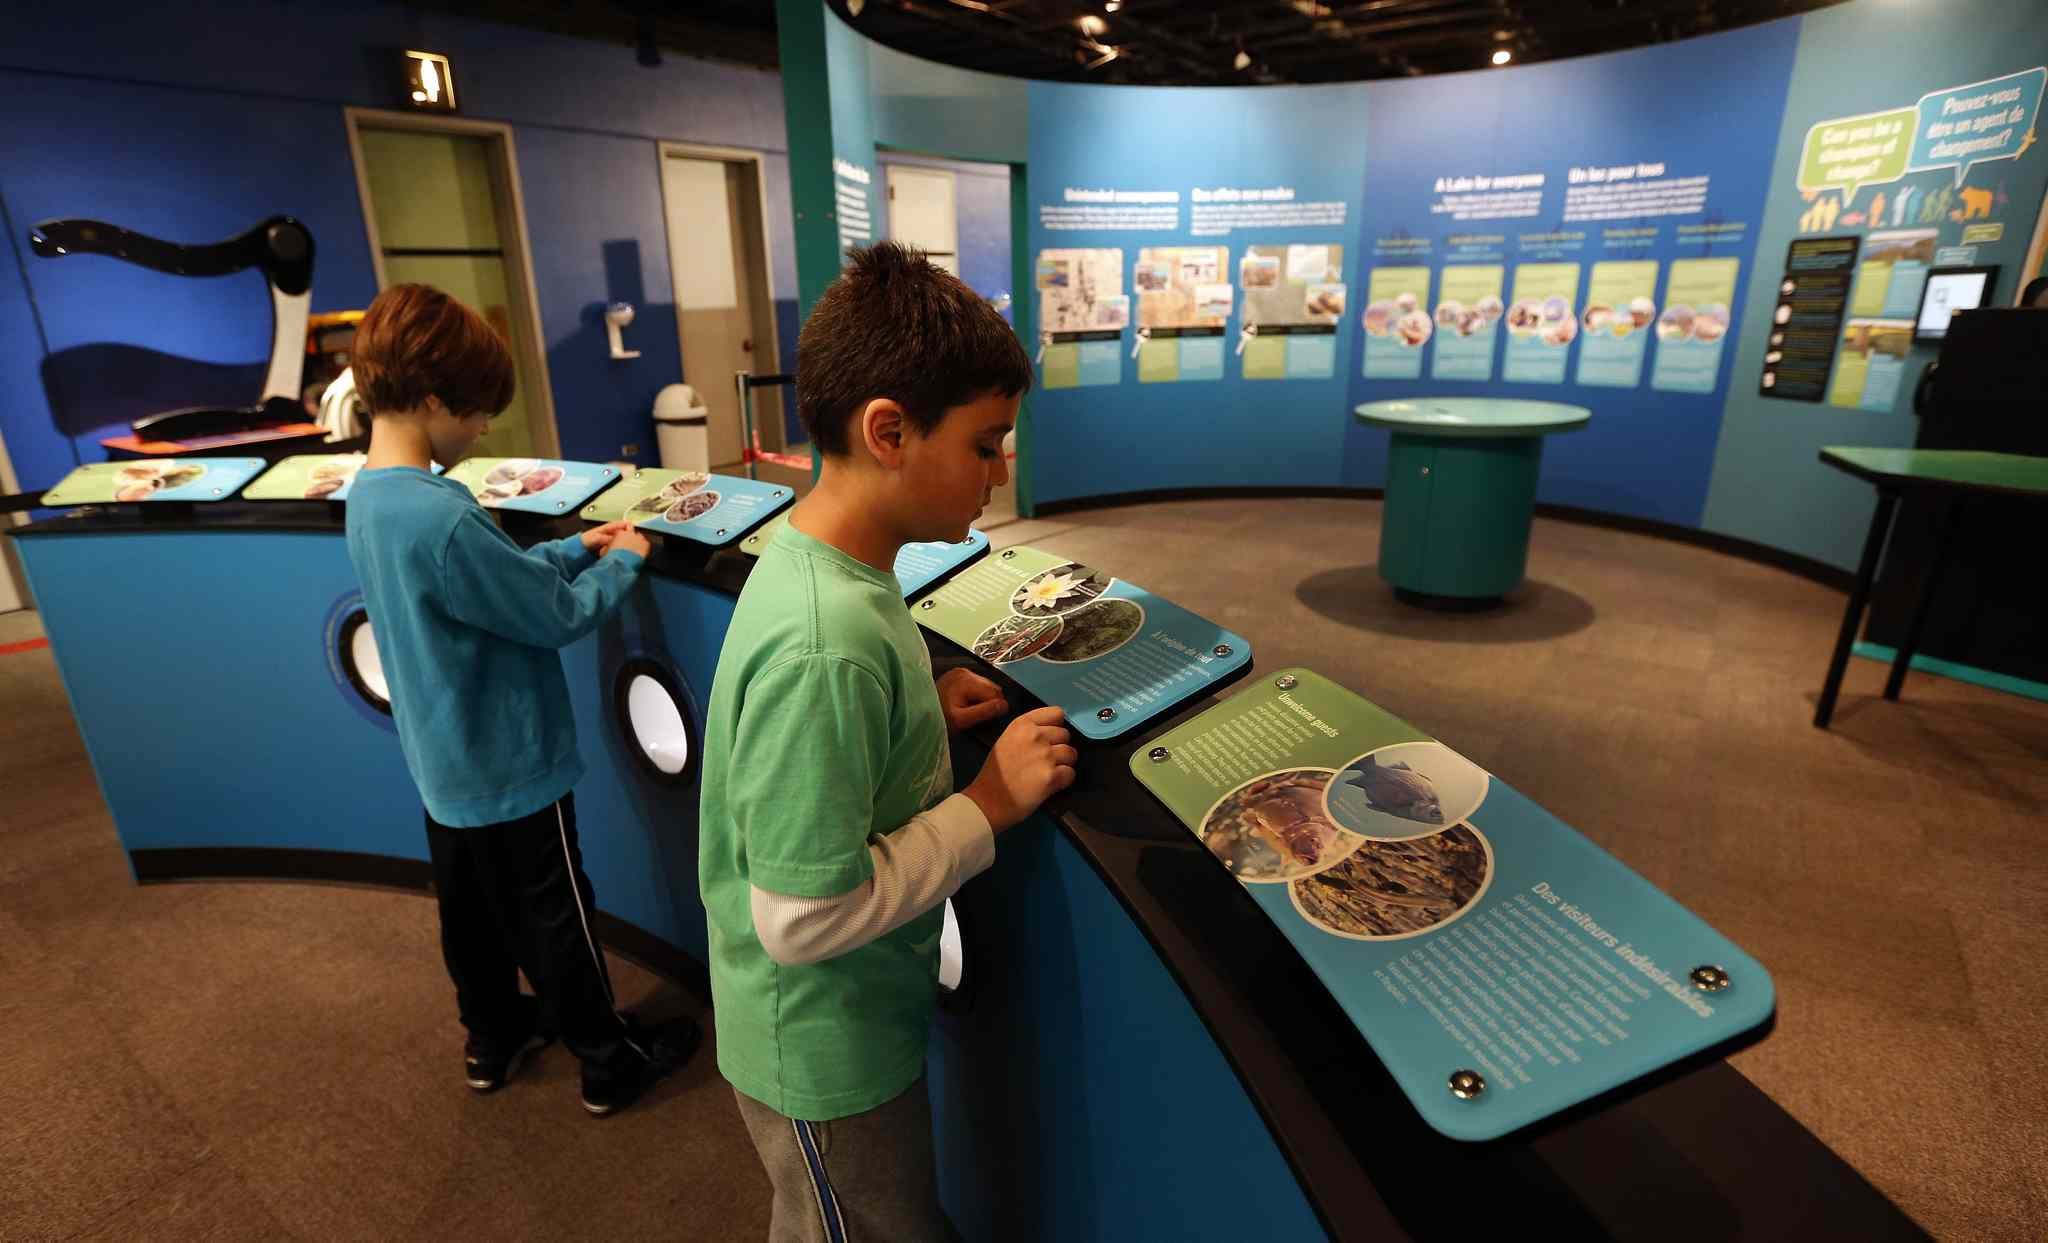 From left: Jacob Block, 8, and Dhruv Joshi, 9, get look at the new exhibit Lake Winnipeg: Shared Solutions, which opens March 22 at the Manitoba Museum.